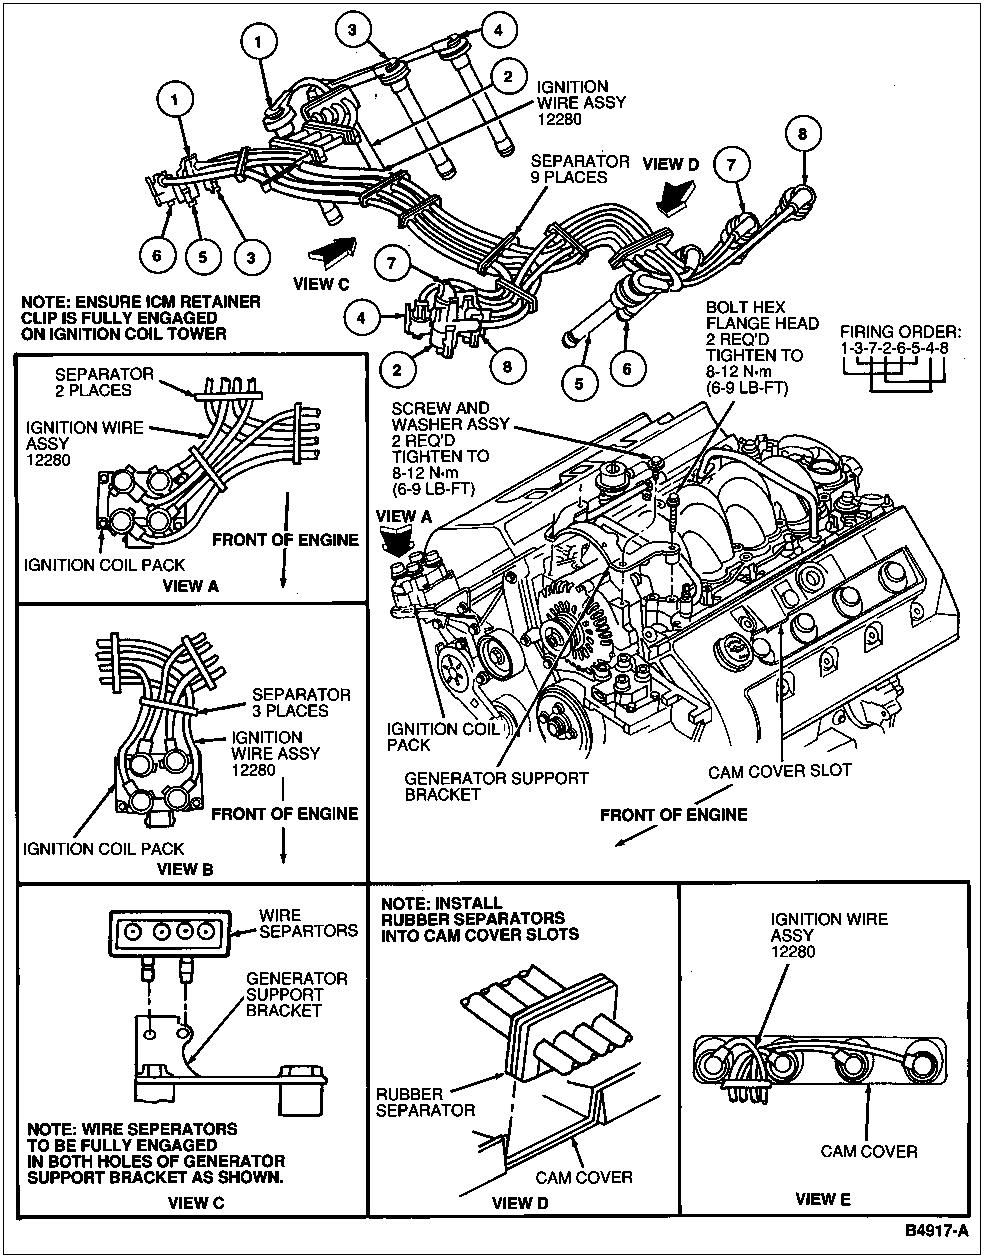 Spark Plug Wiring Diagram Free For You Lamp 1 Ballast Get Image About 95 Deville 1989 Chevy